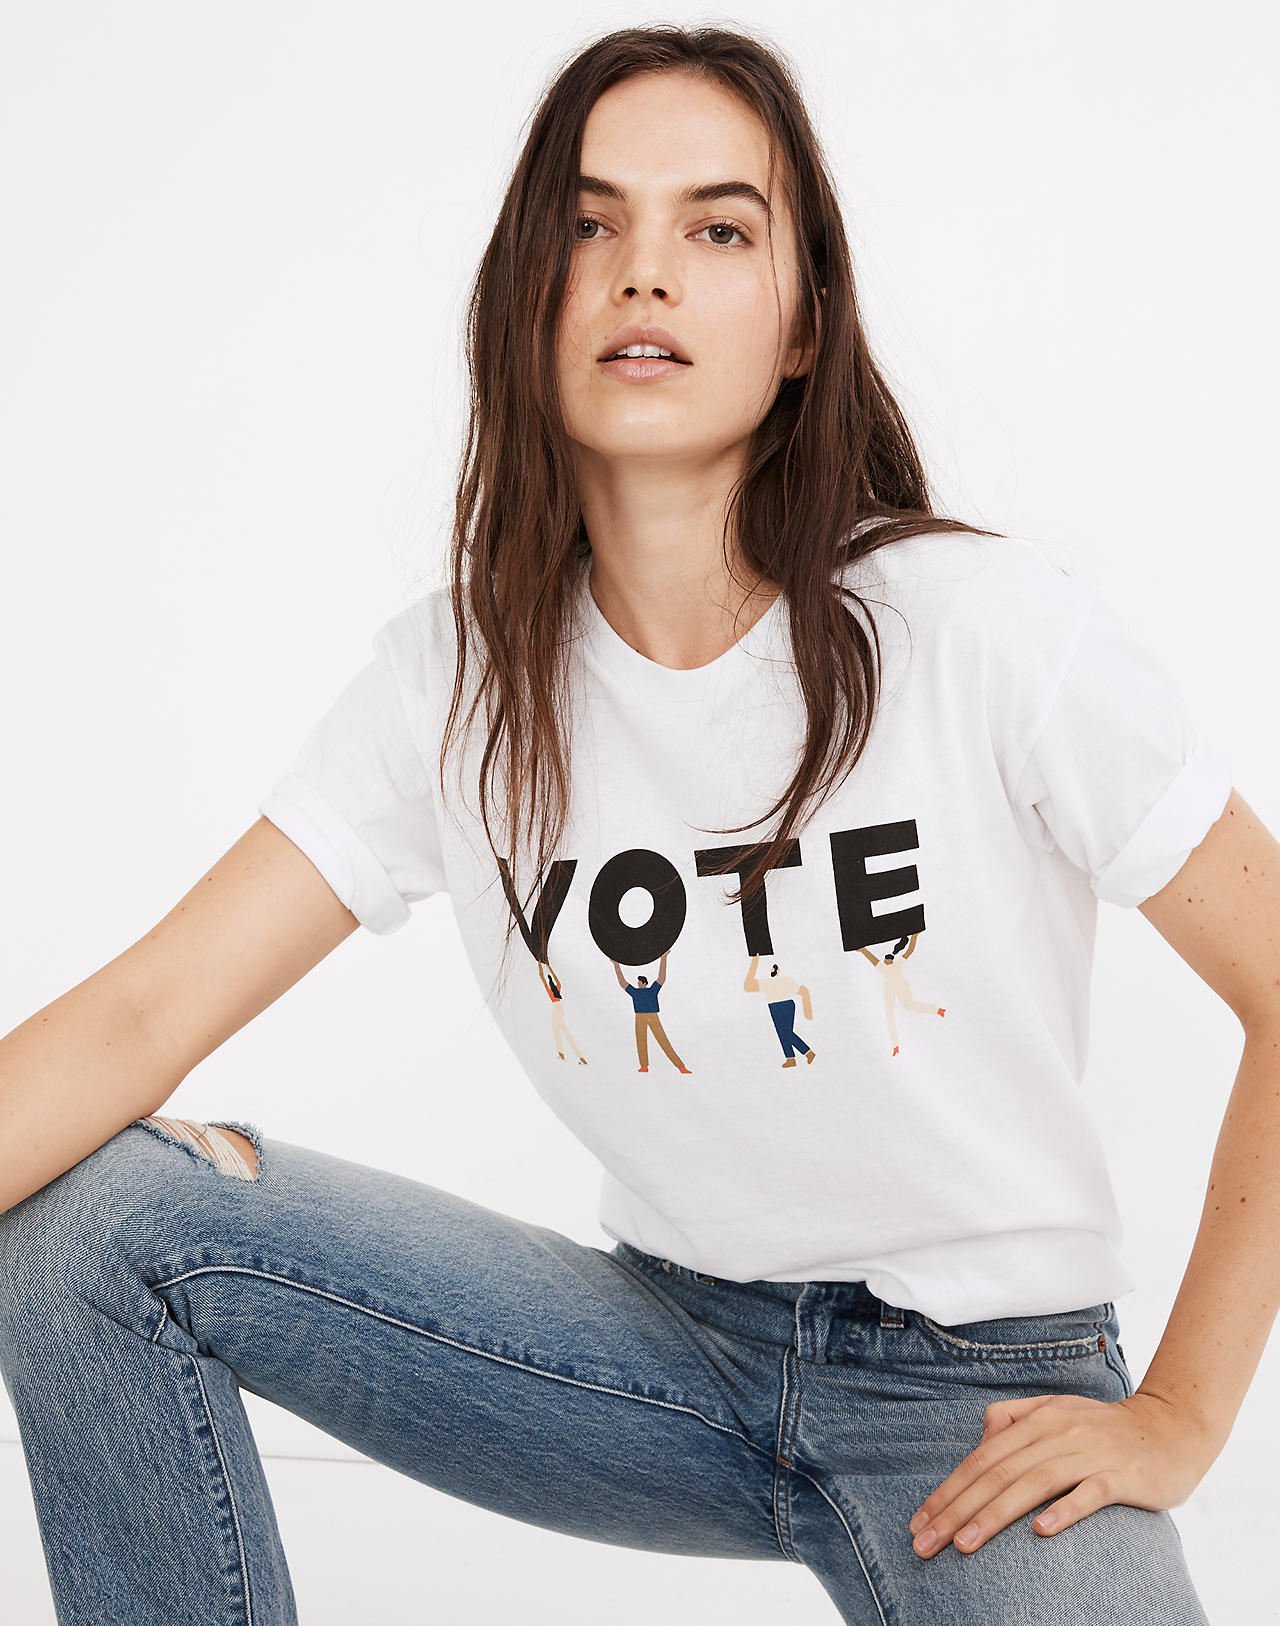 Illustrated vote t-shirt